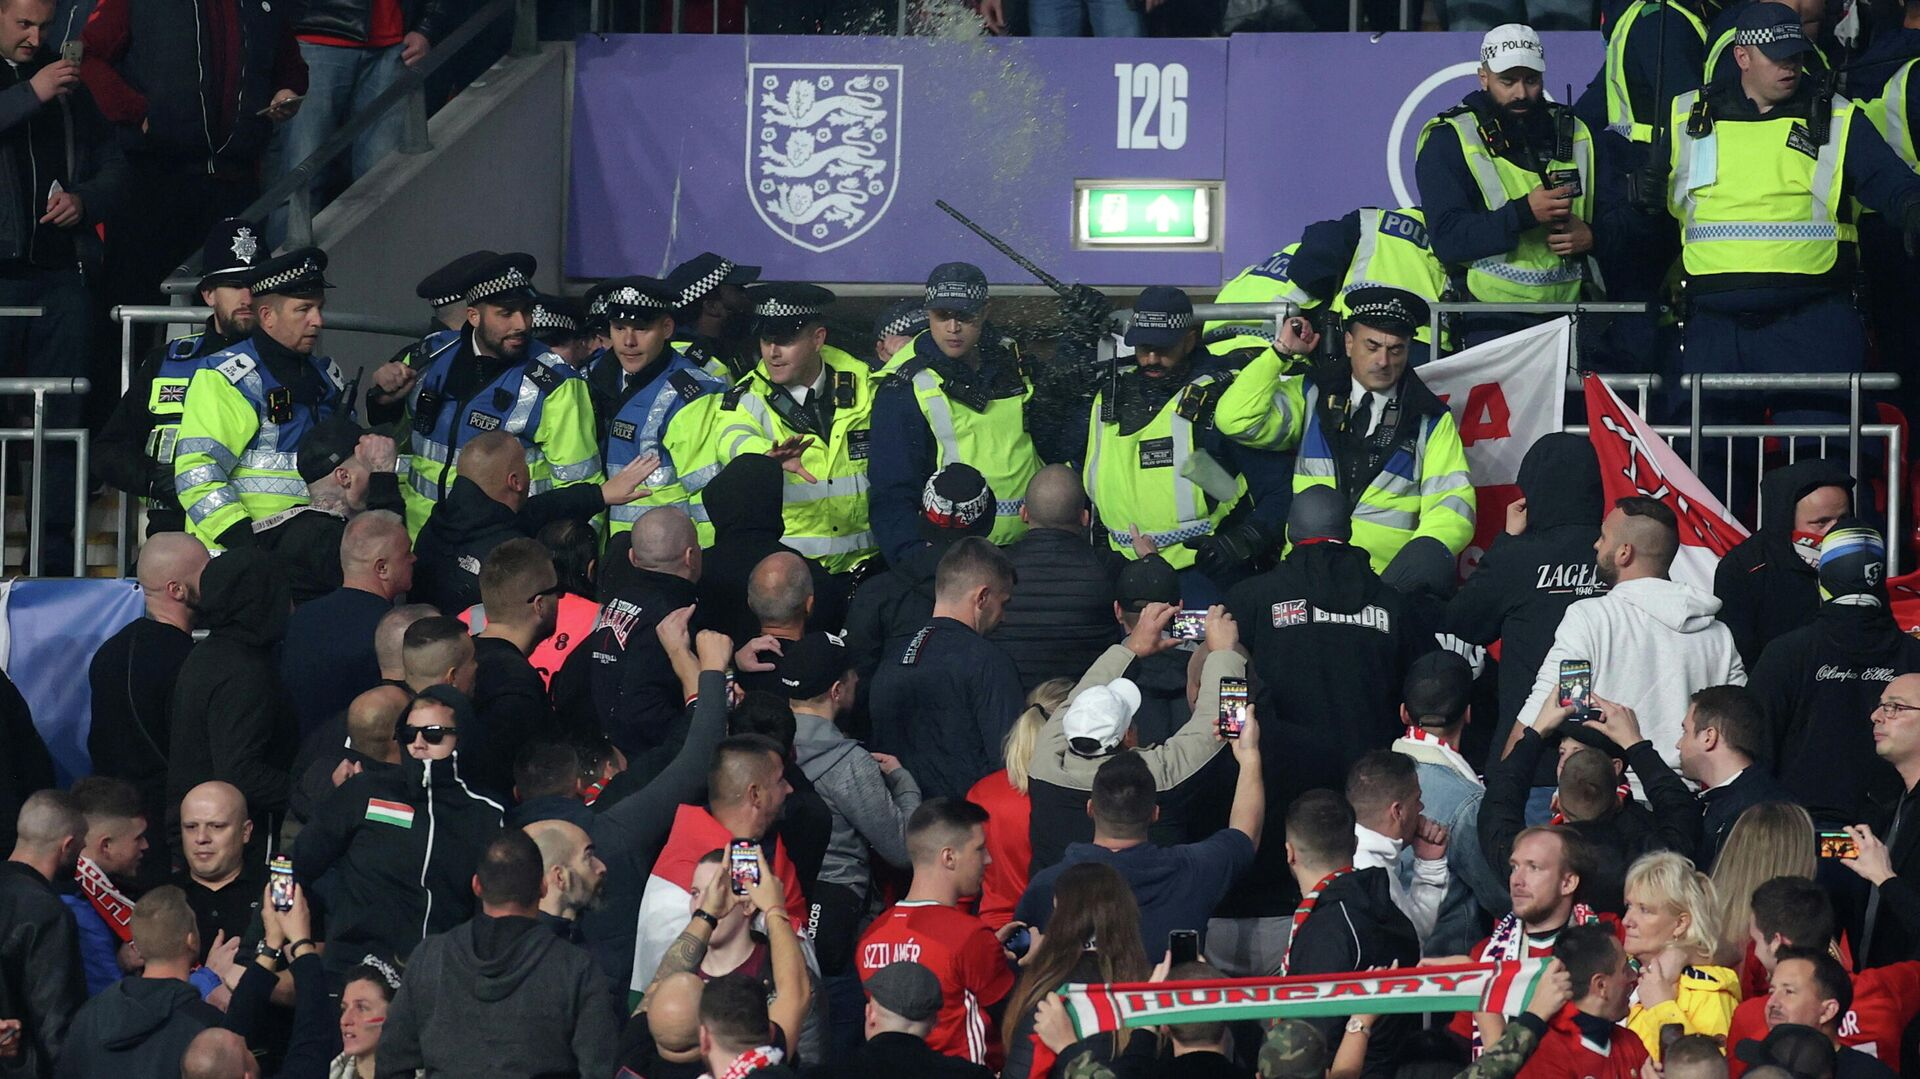 Soccer Football - World Cup - UEFA Qualifiers - Group I - England v Hungary - Wembley Stadium, London, Britain - October 12, 2021 General view as Police clash with Hungary fans during the match Action Images via Reuters/Carl Recine     TPX IMAGES OF THE DAY - РИА Новости, 1920, 13.10.2021